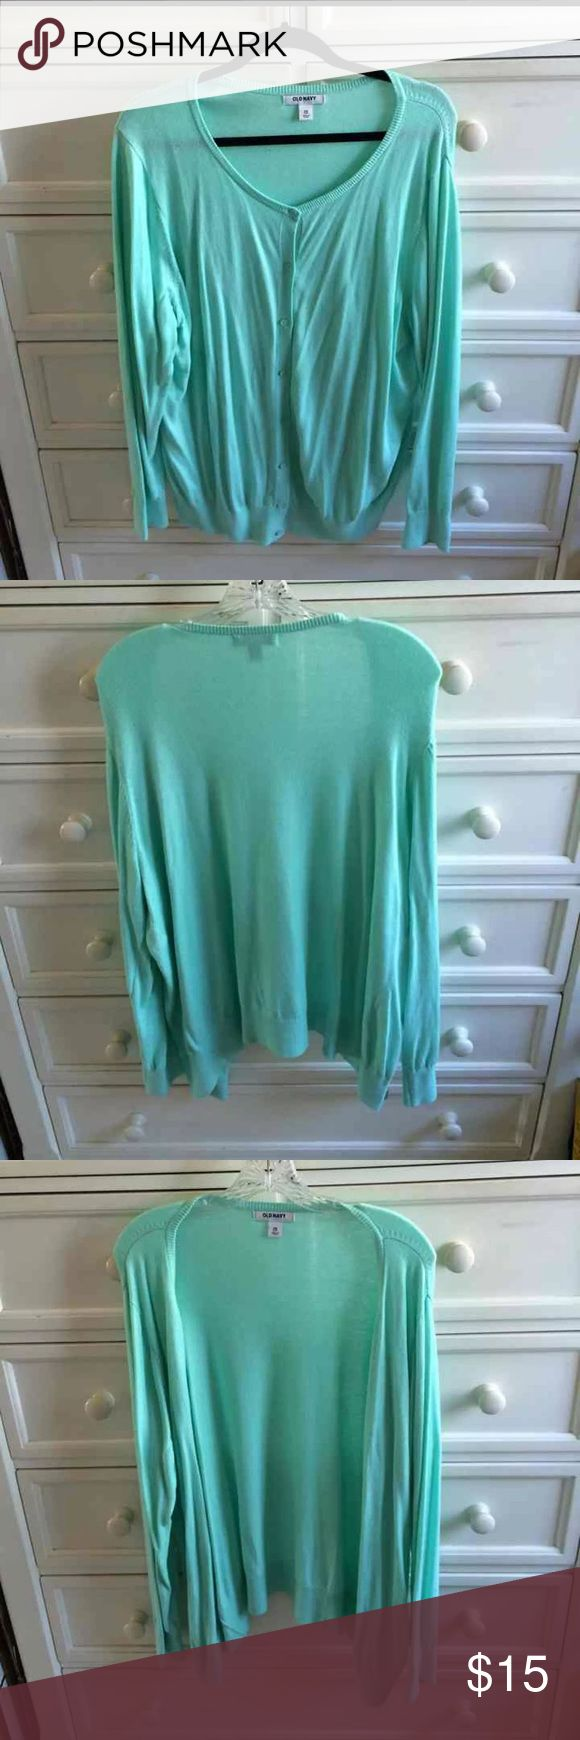 Old Navy Turquoise Cardigan-2XL Old Navy Turquoise Cardigan. Barely Worn, like new! Super cute for spring and summer! Thin and lightweight. Old Navy Sweaters Cardigans